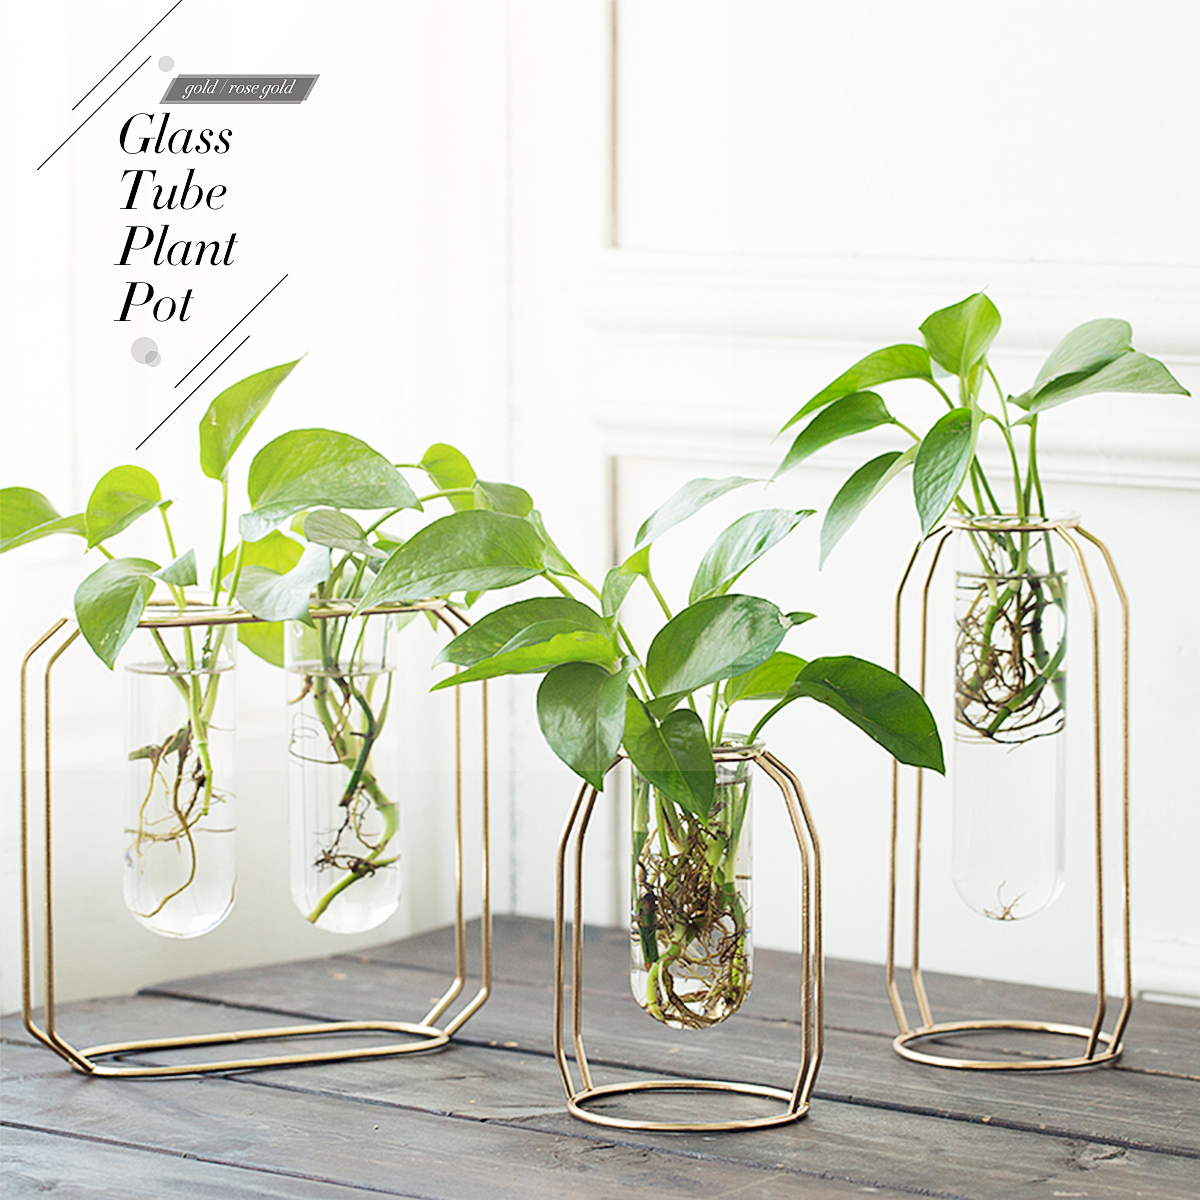 5pcs Clear Glass 12cm Flowers Plant Vase Holder Terrarium with Iron Stand